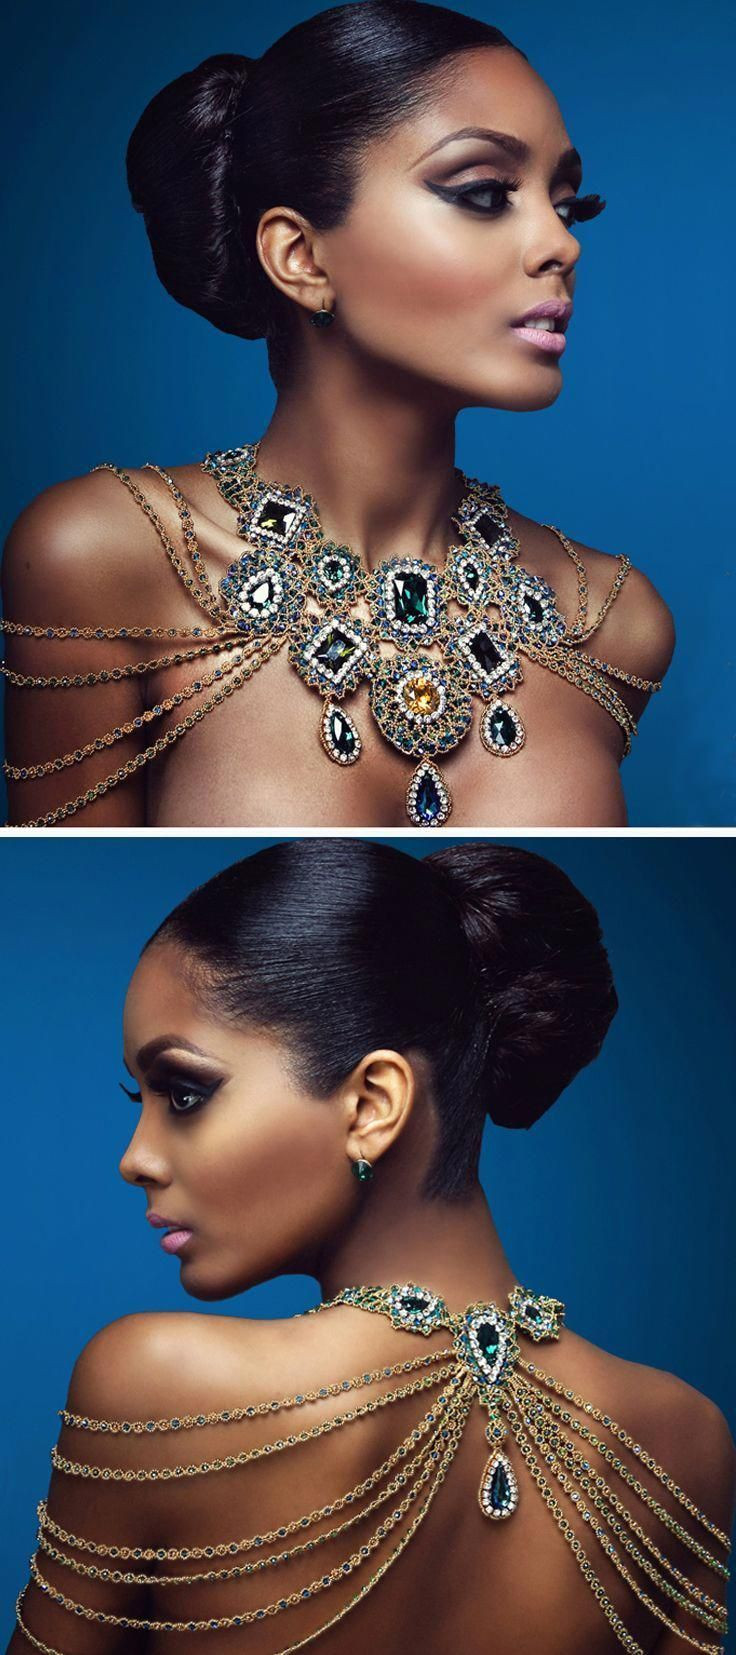 Body Jewelry Photoshoot  Pin by Abigail Cummings on Goddess shoot in 2020